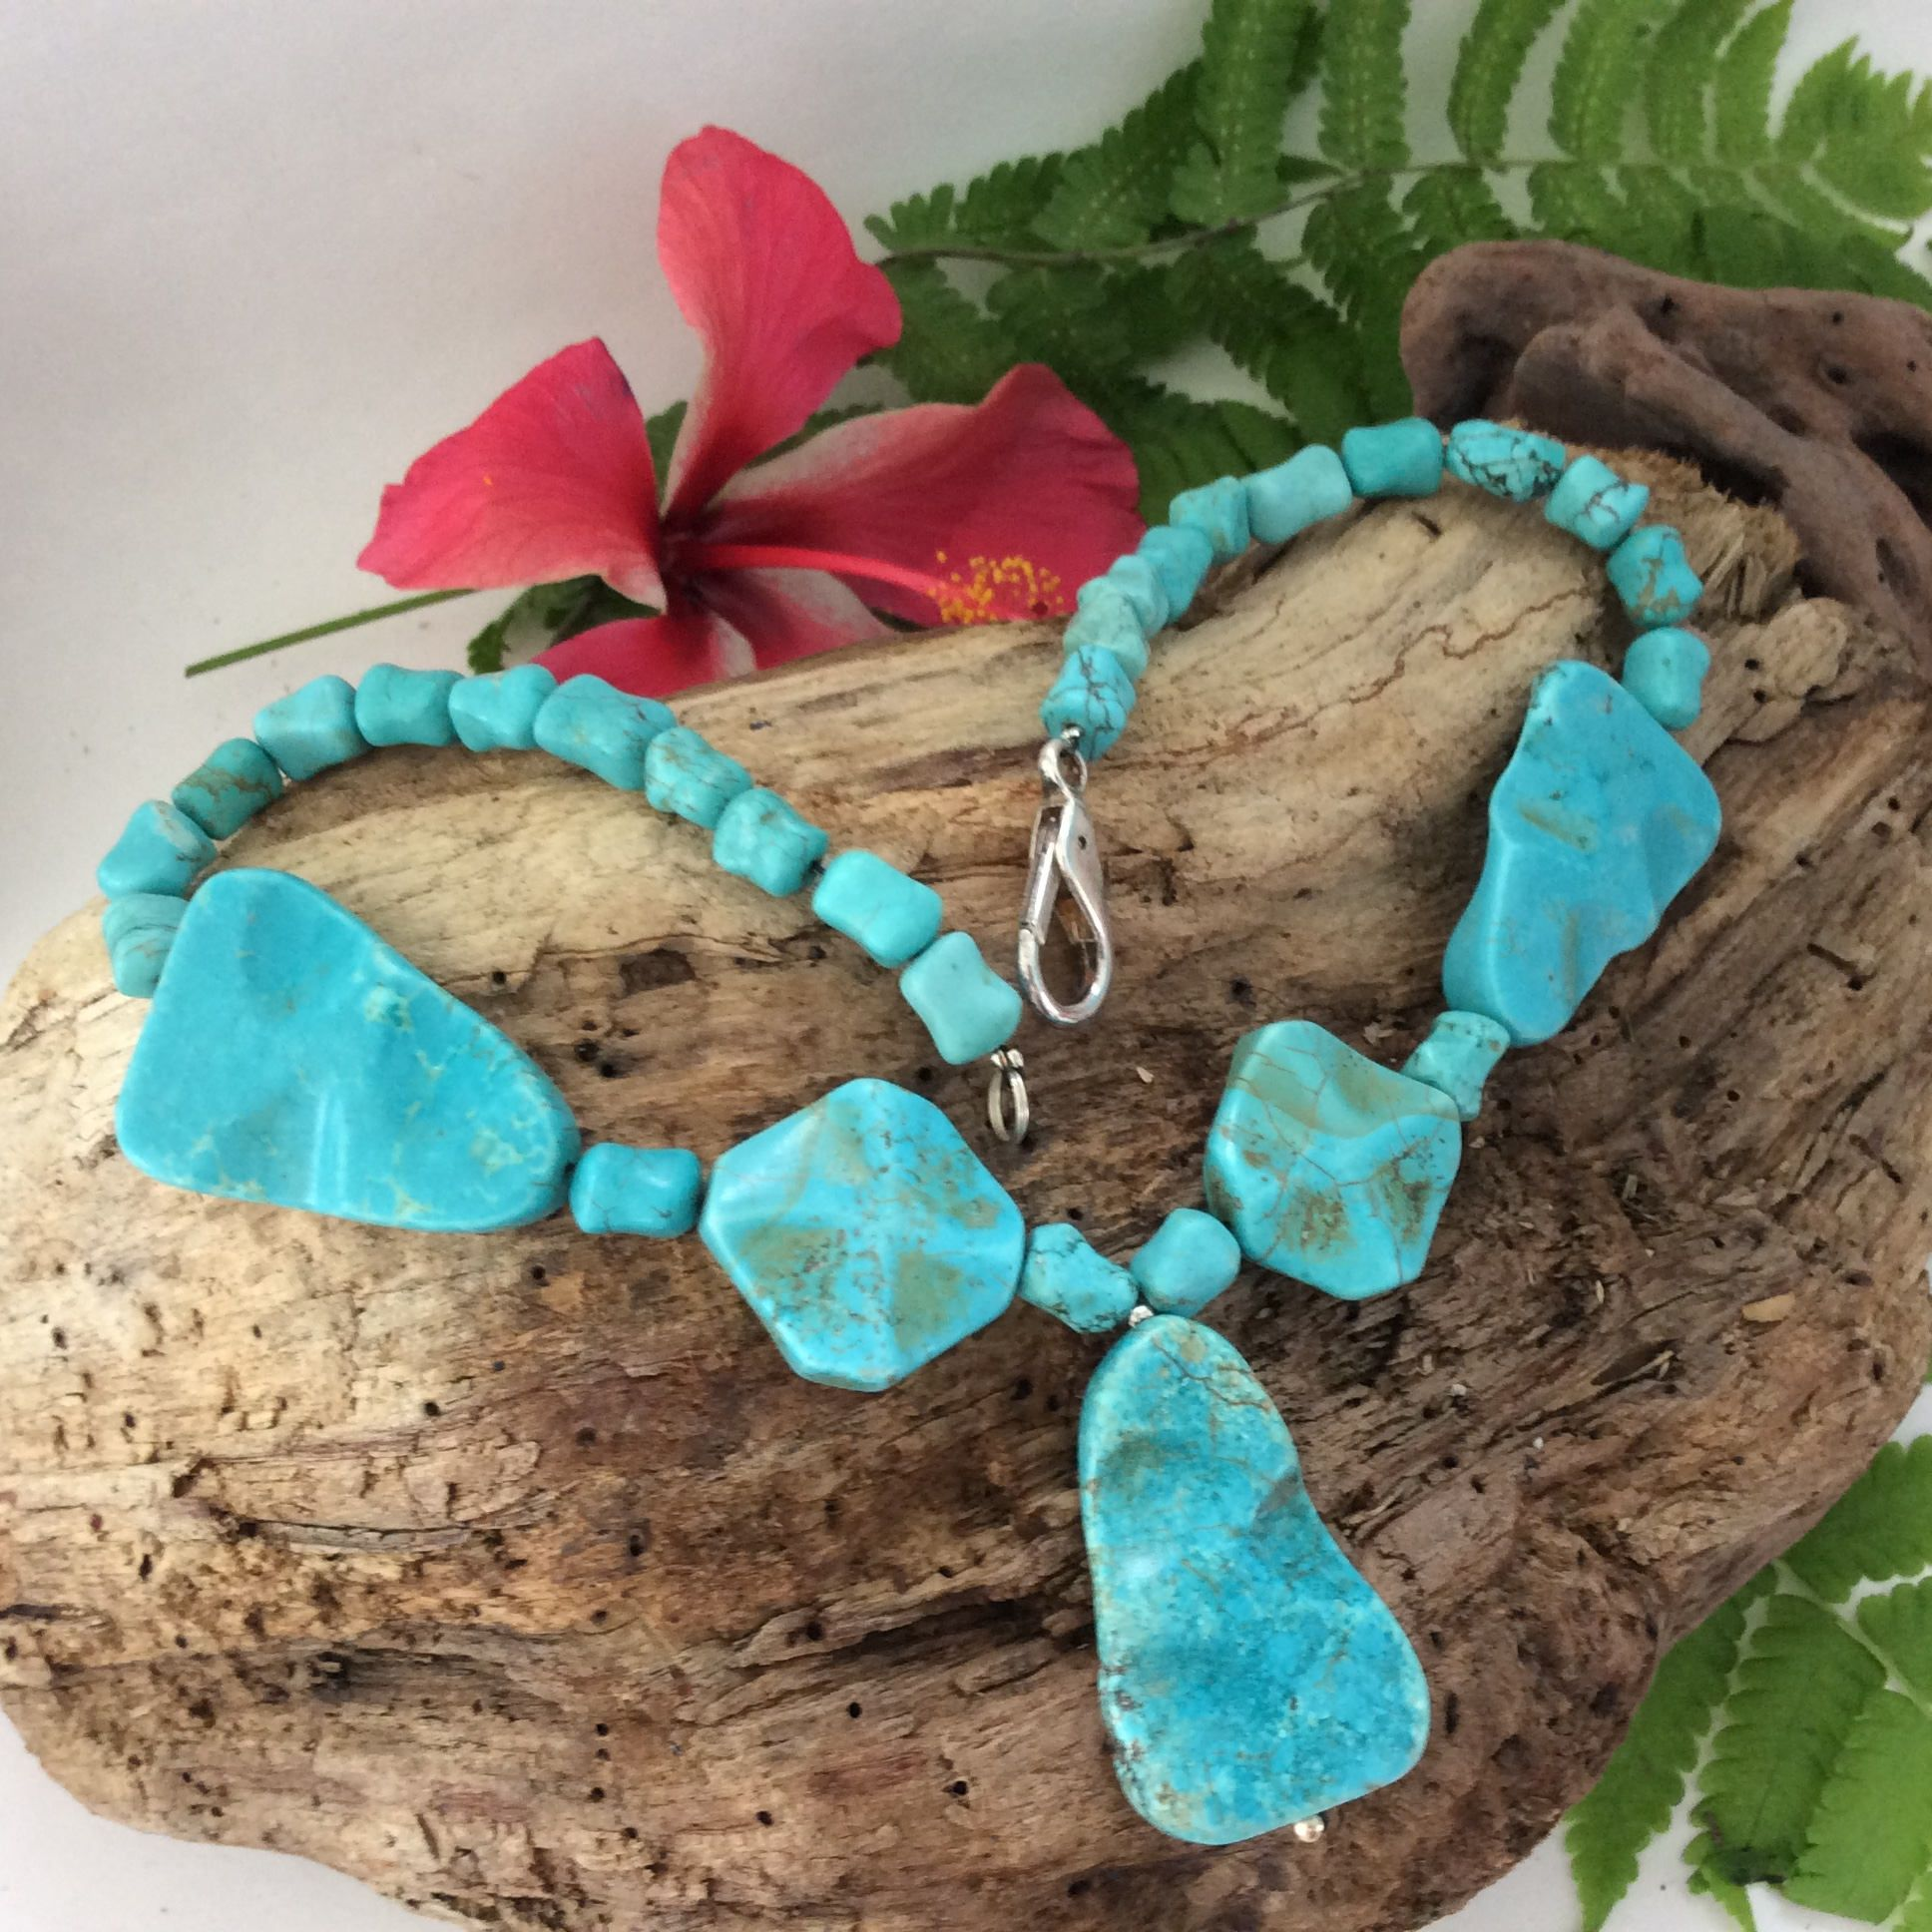 Turquoise Necklace Pendant Chunky Turquoise Beads Semi Precious Stones Silver Clasp Designer Neckla Turquoise Necklace Gift Necklace Necklace Designs